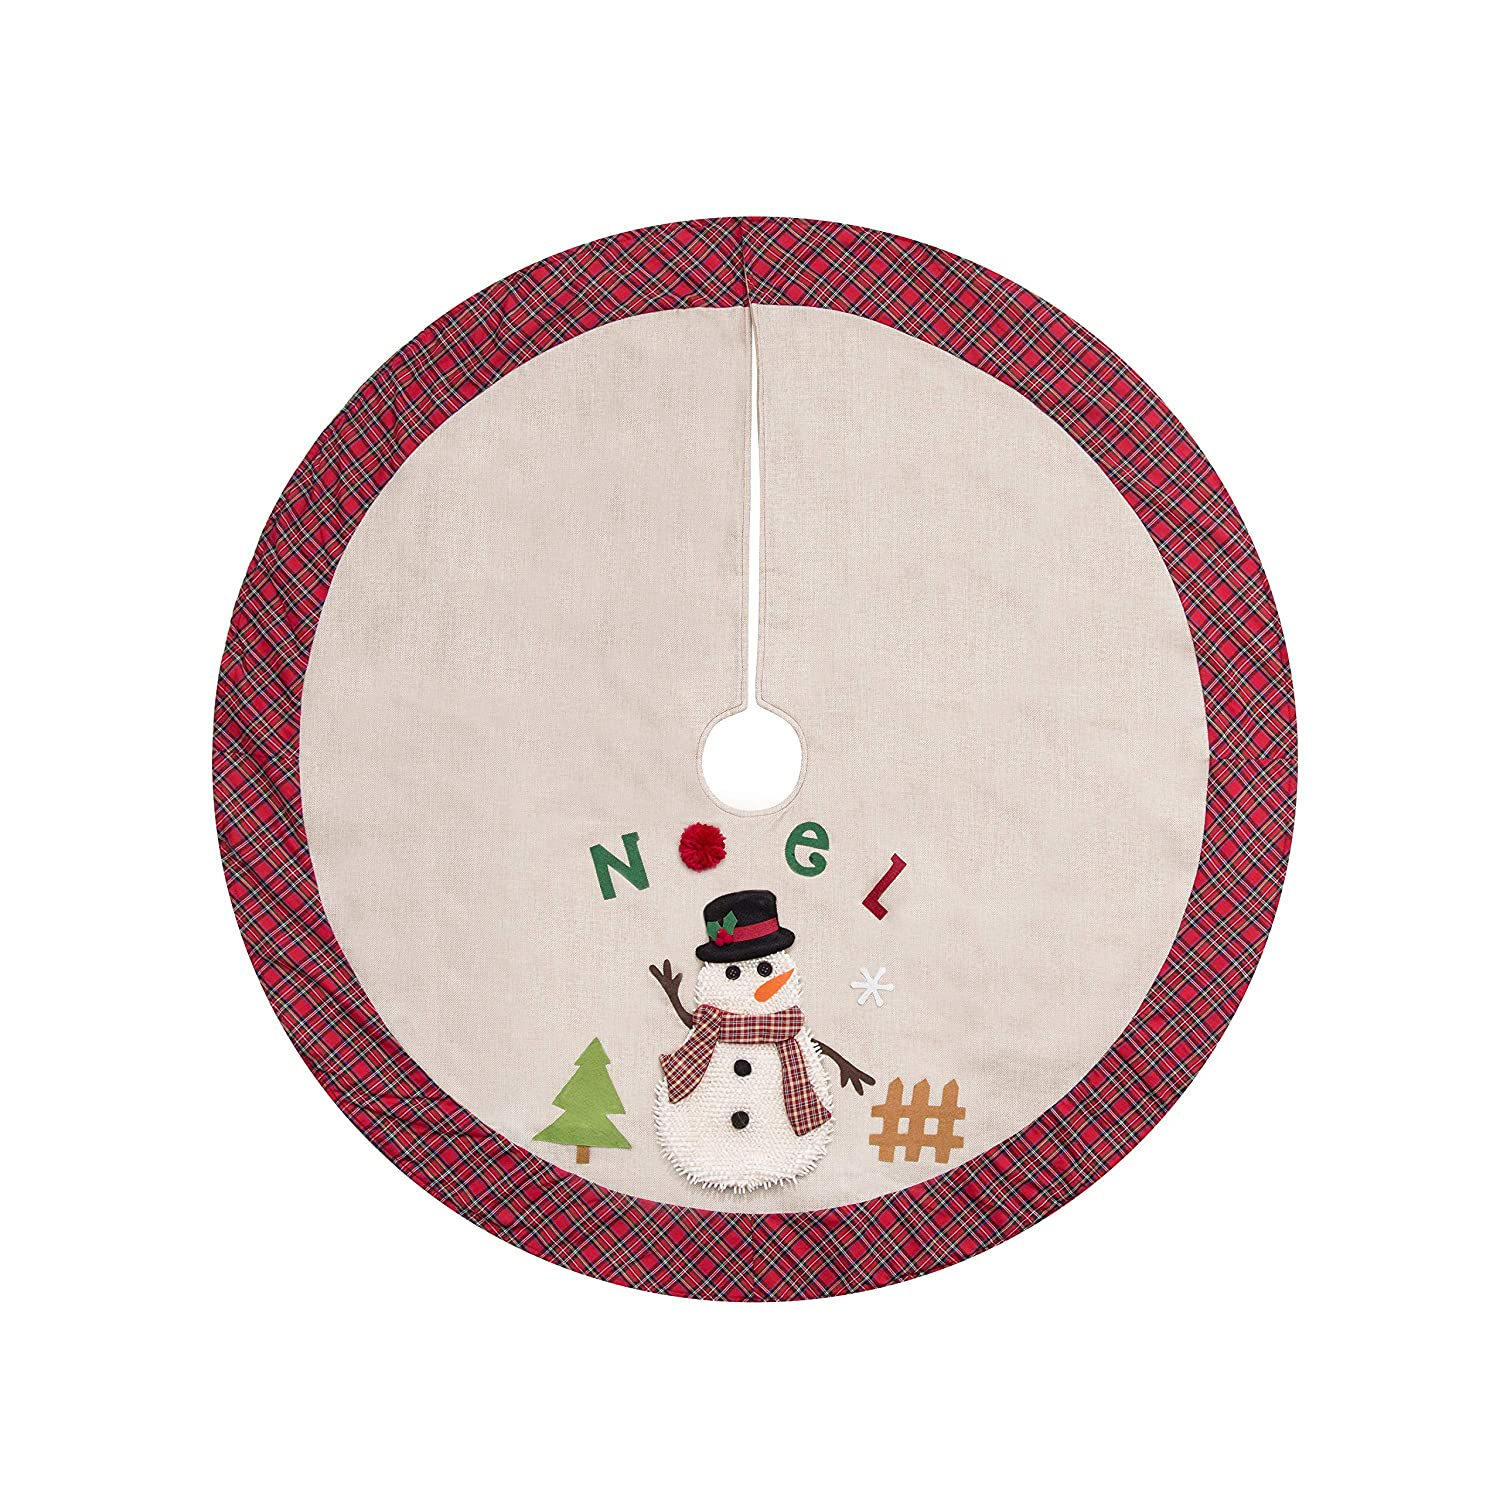 AUTUWT Burlap Tree Skirt Christmas 48